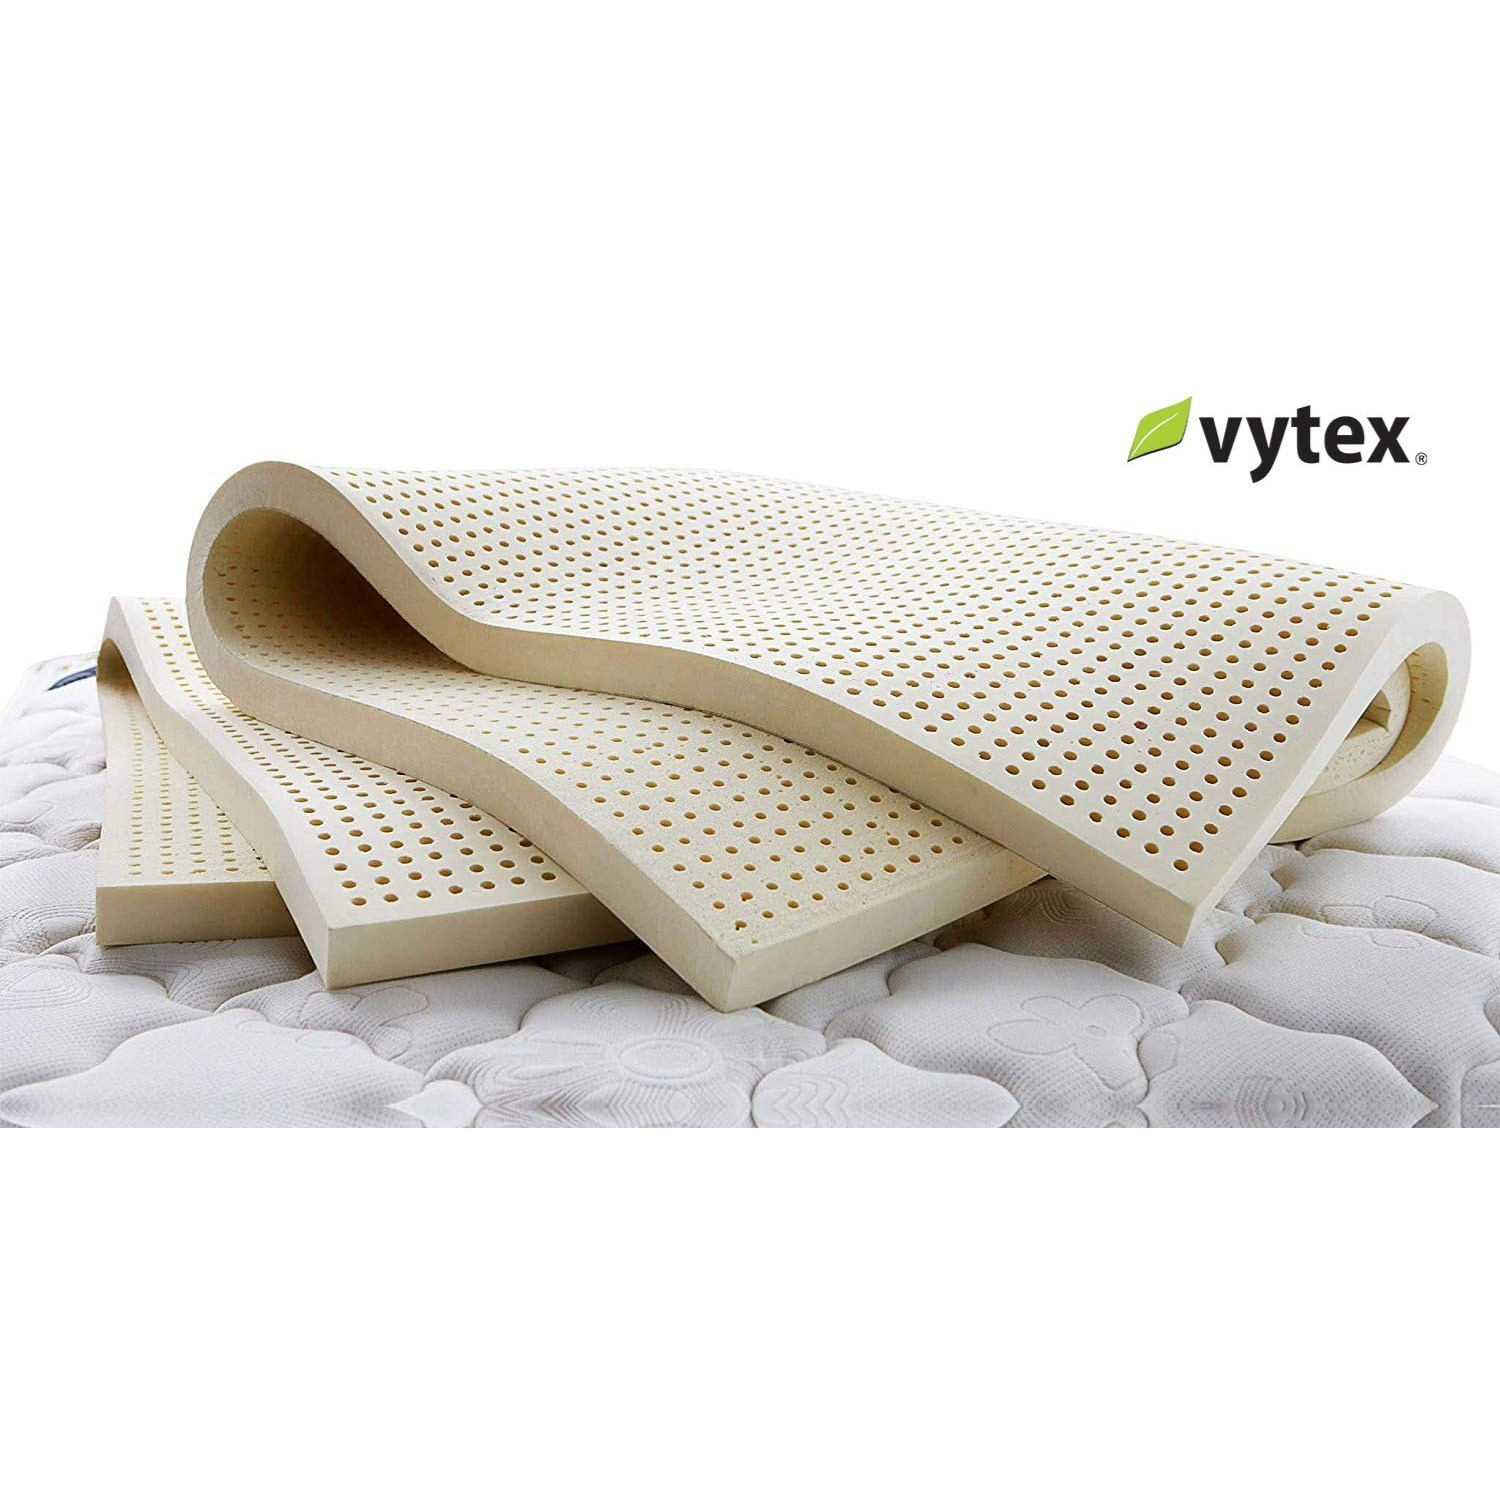 "Vytex Mattress Toppers - Soft Full 3"" Soft Latex Mattress Topper by Vytex at Rotmans"